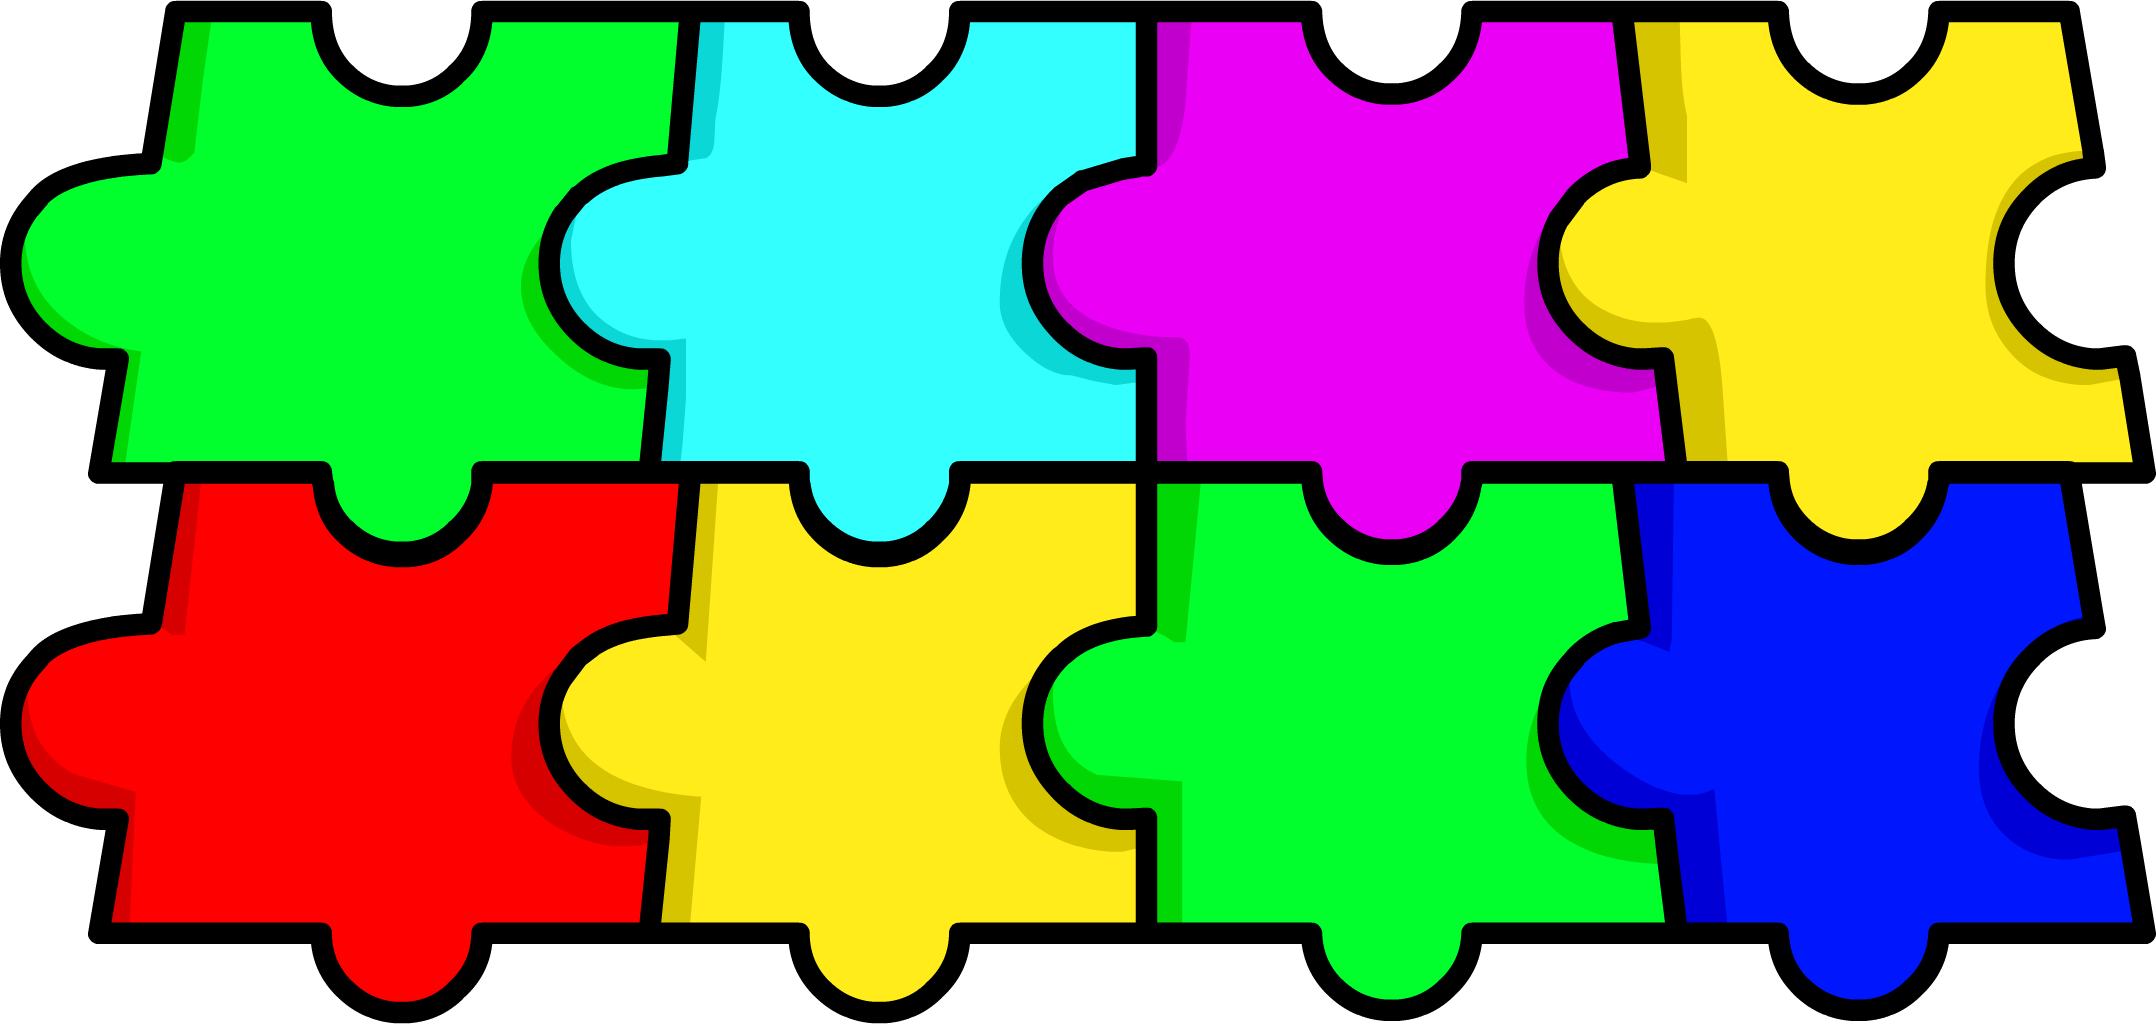 Puzzle clipart floor. Club penguin wiki fandom